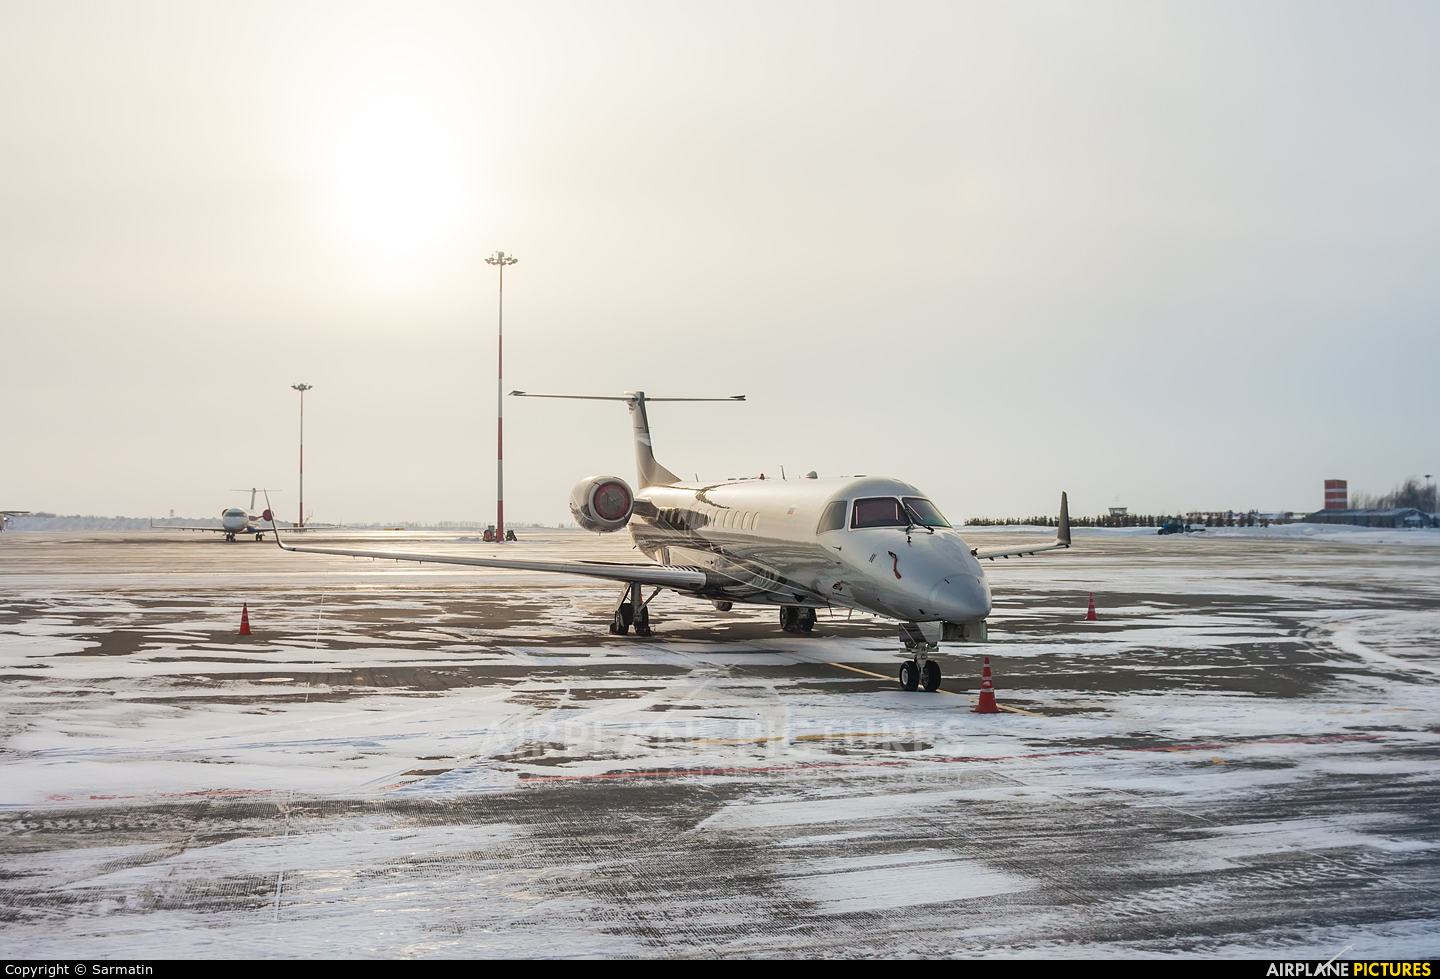 Private RA-02857 aircraft at Kazan